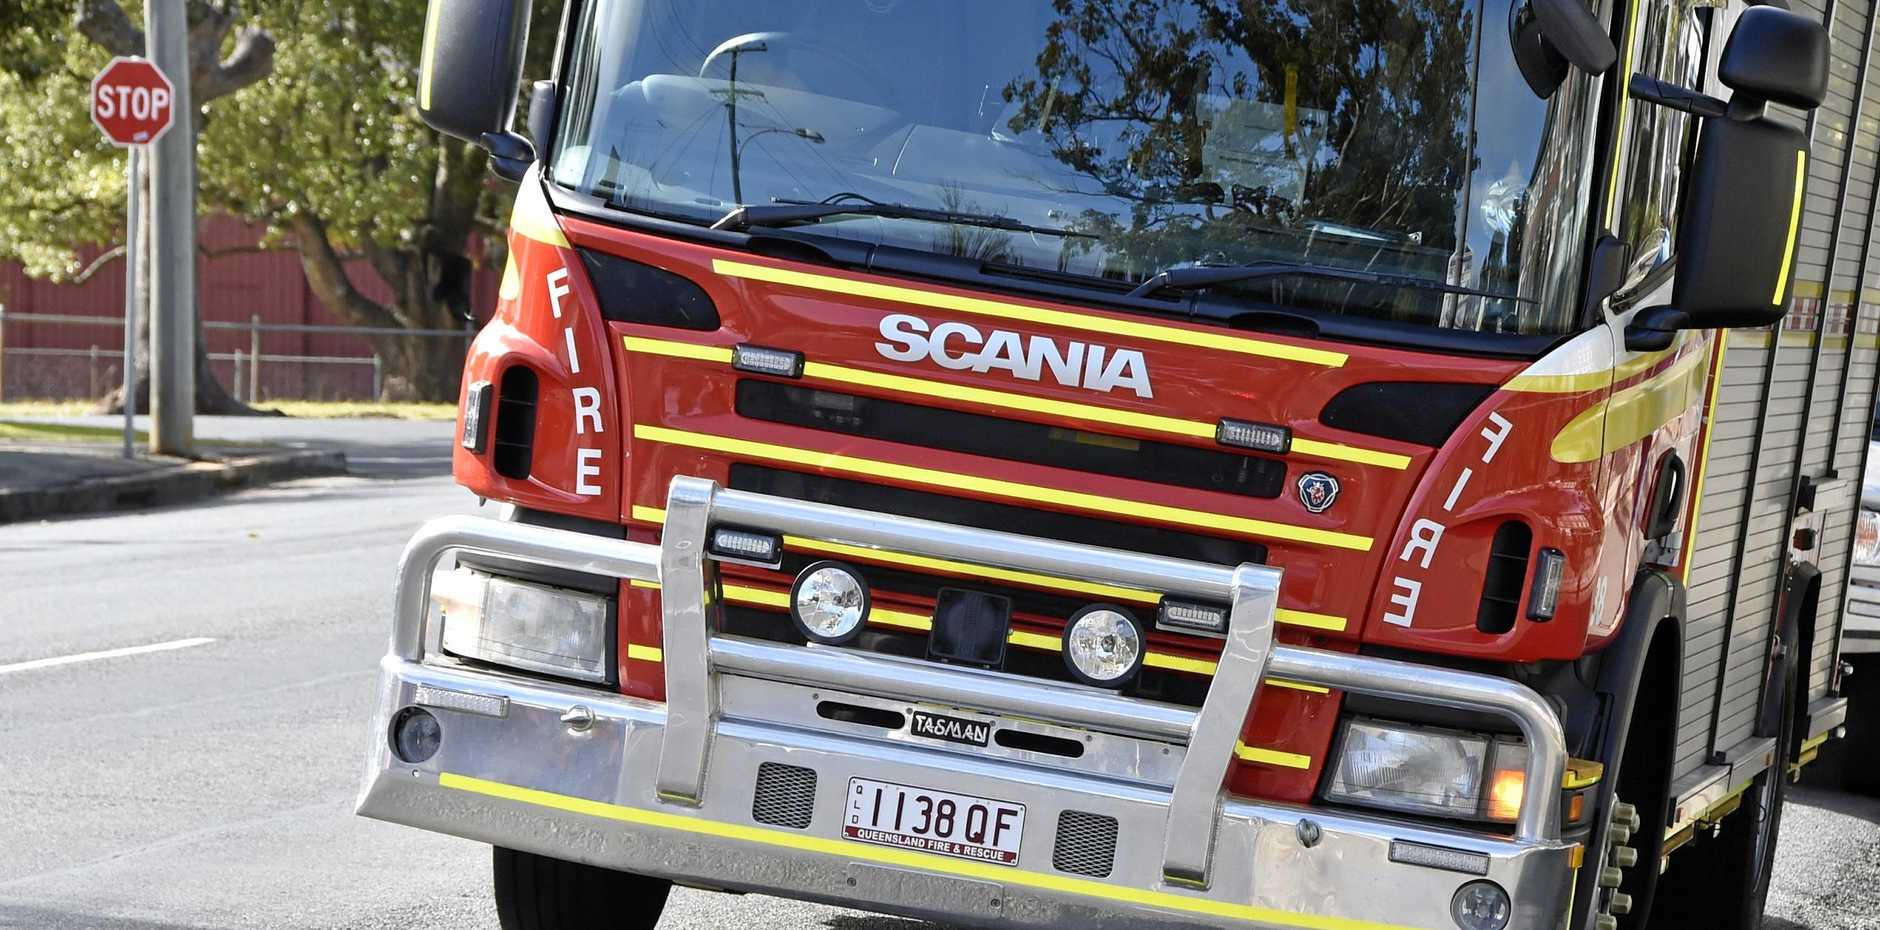 Crews have been called to the scene of a house fire at Sunshine Beach.